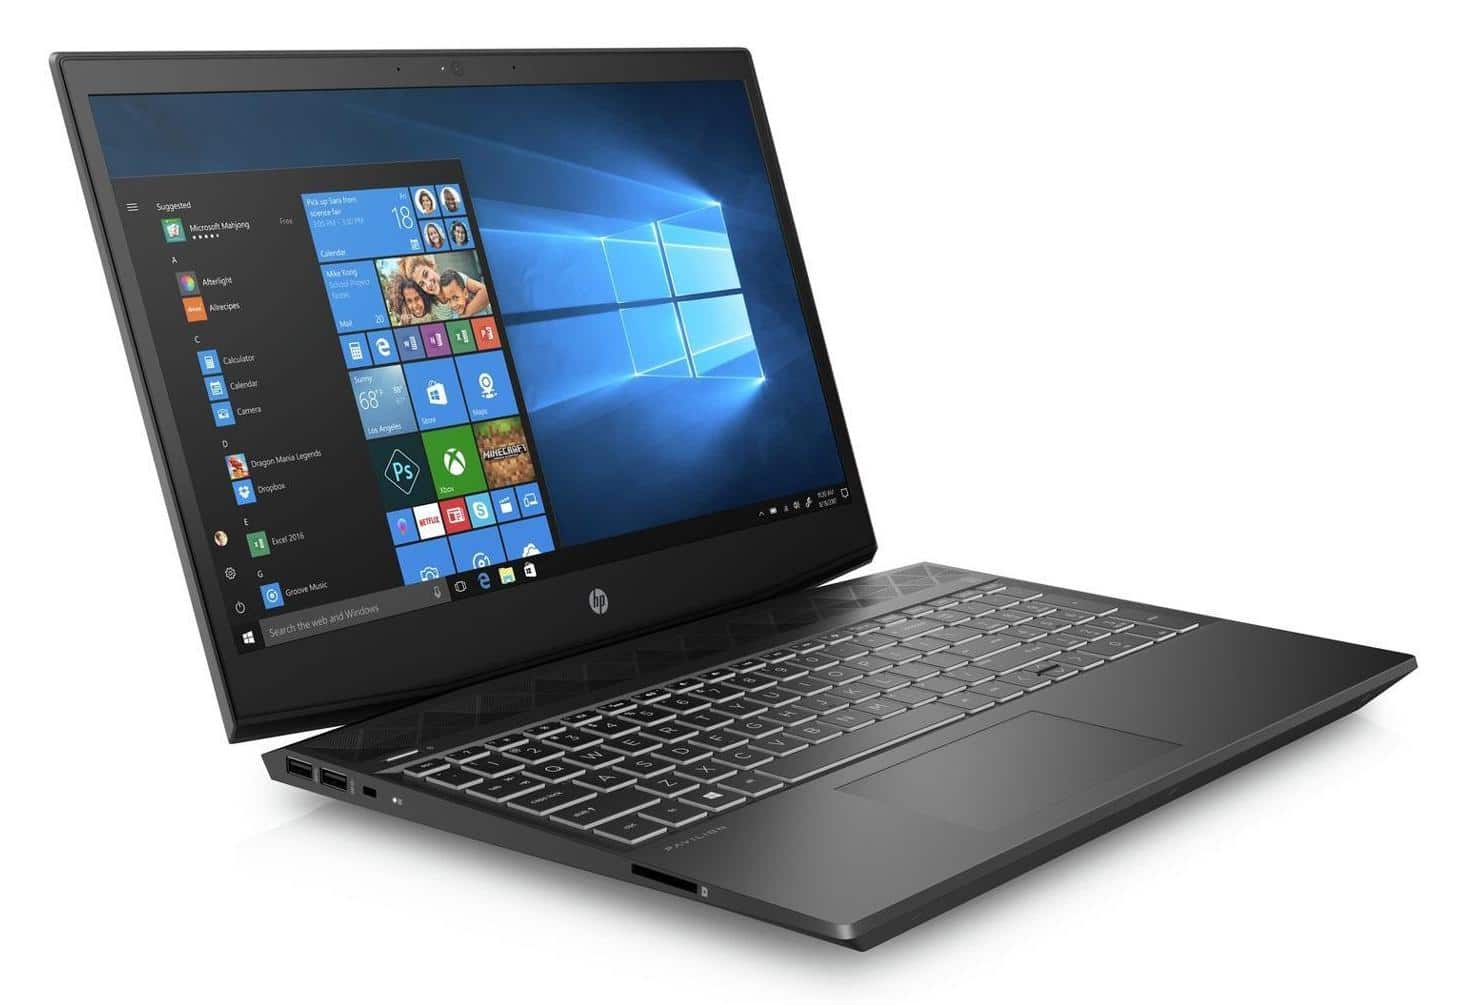 https://www.laptopspirit.fr/wp-content/uploads/new/2020/02/HP-Pavilion-Gaming-15-ec0026nf-fg.jpg